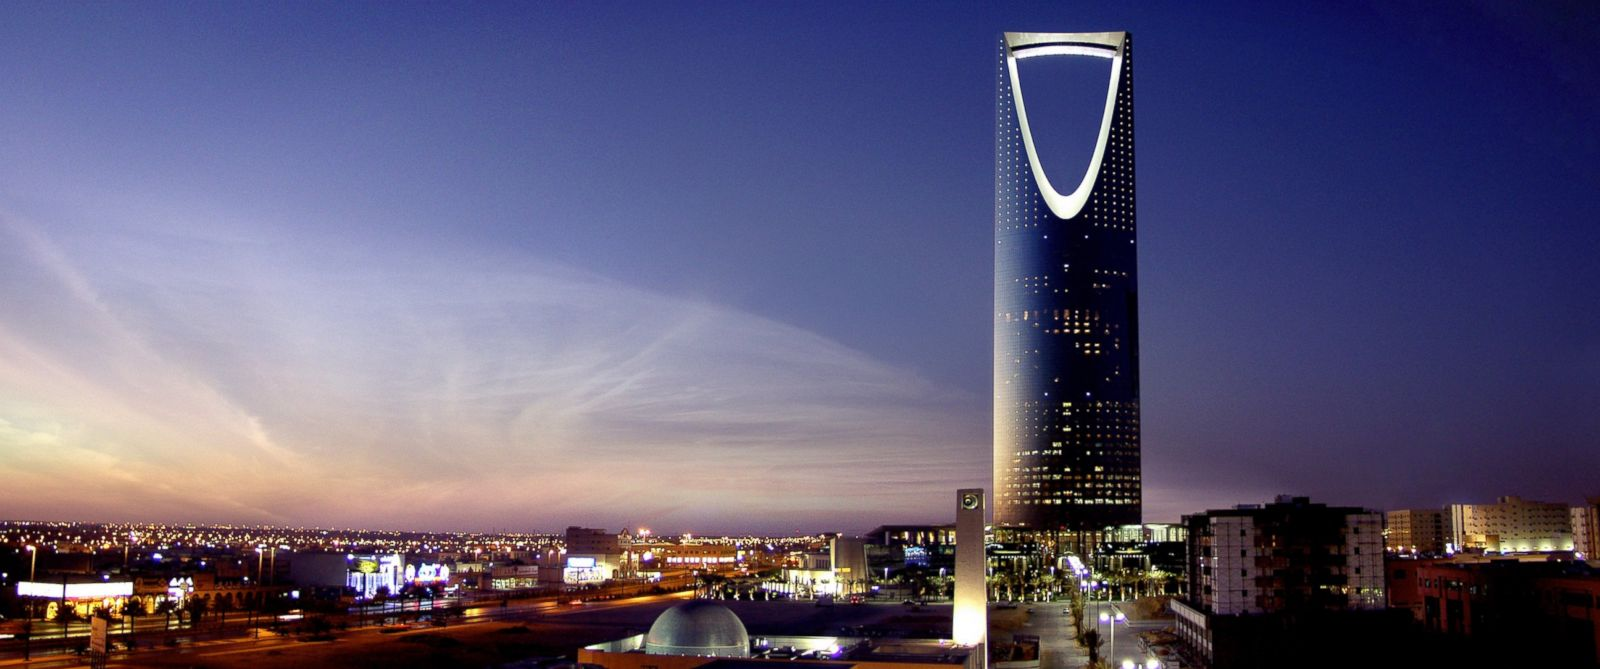 Saudi Arabia Investment Bank